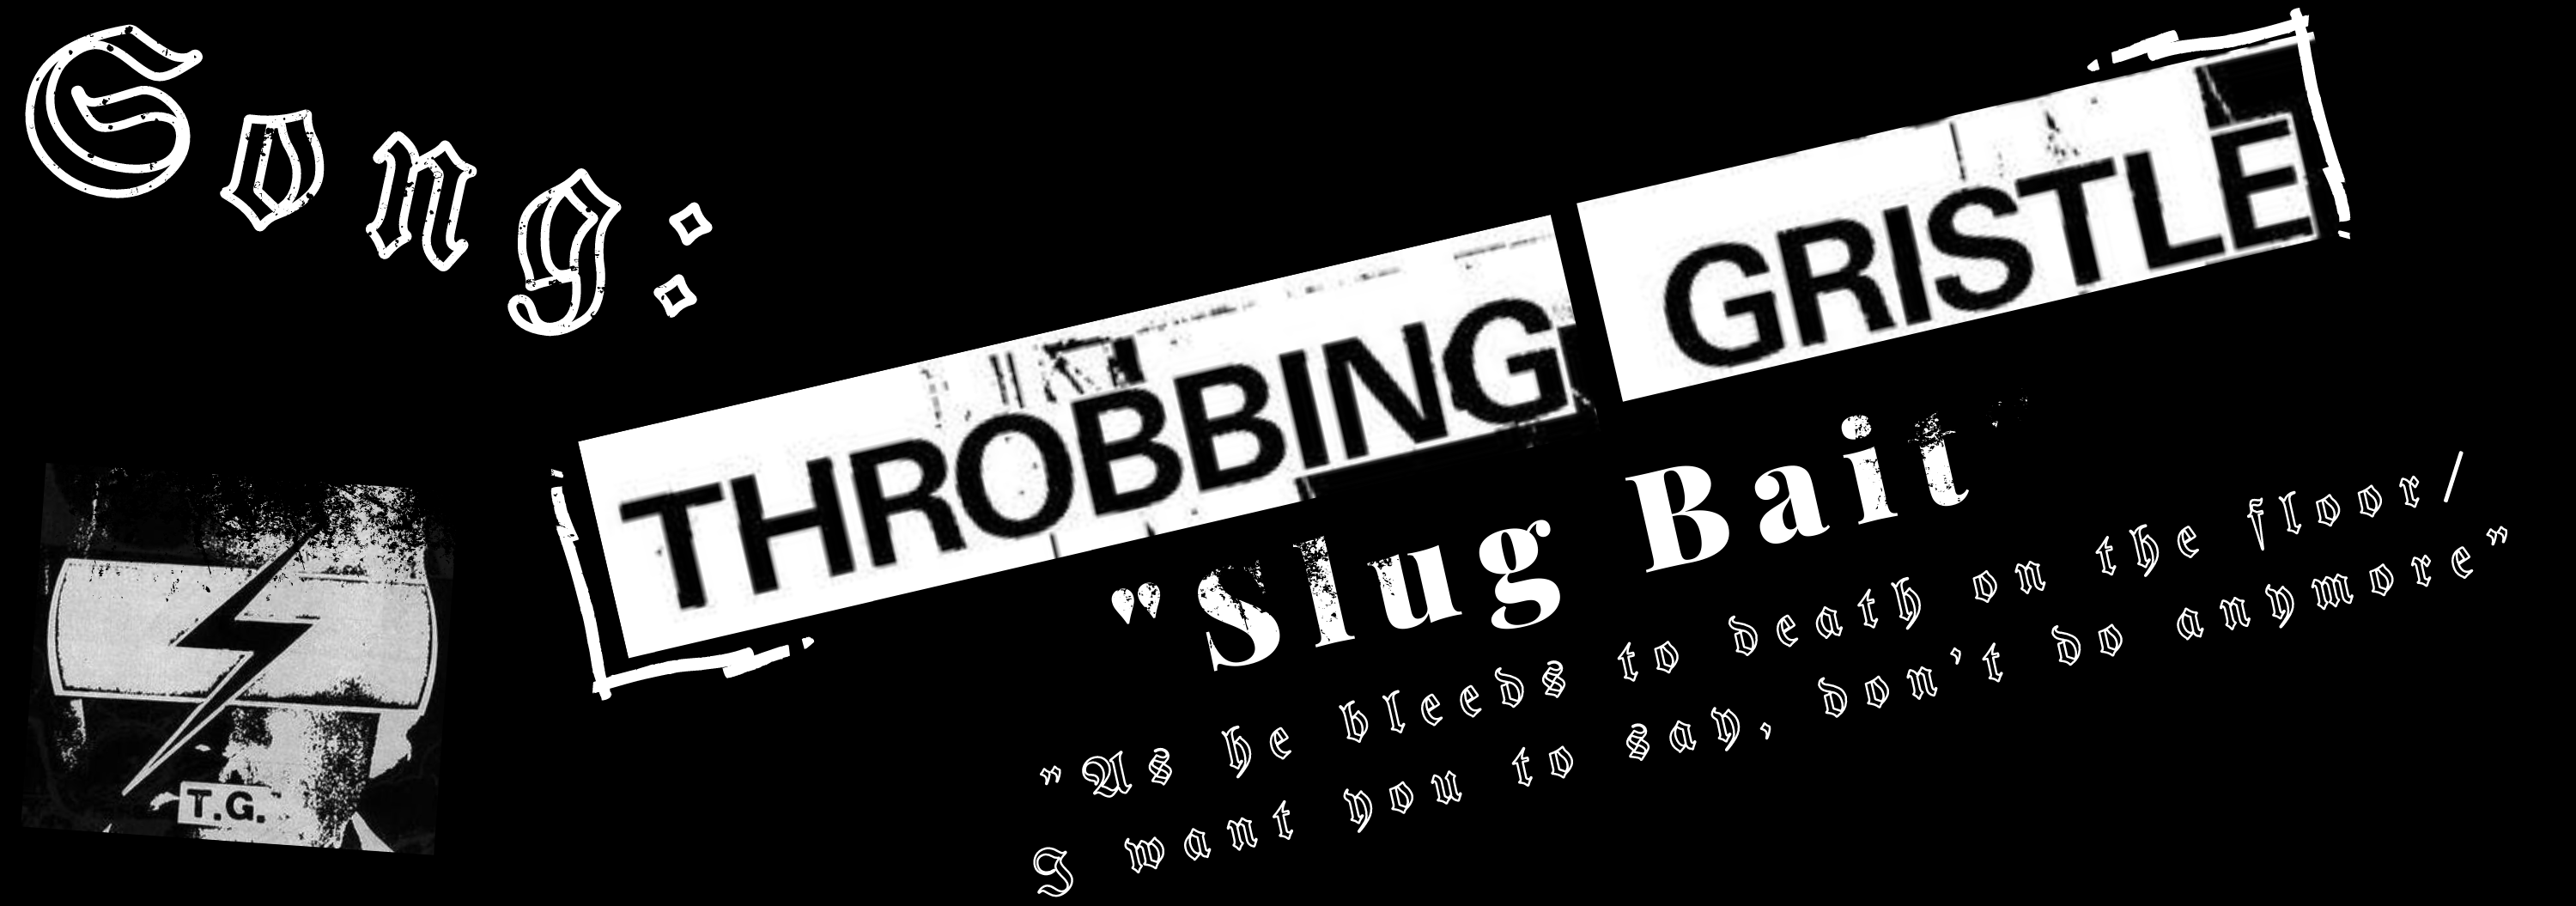 A black and white graphic that says Throbbing Gristle, Slug Bait, and lyrics from the song Slug Bait, featuring the band Throbbing Gristle's logo.